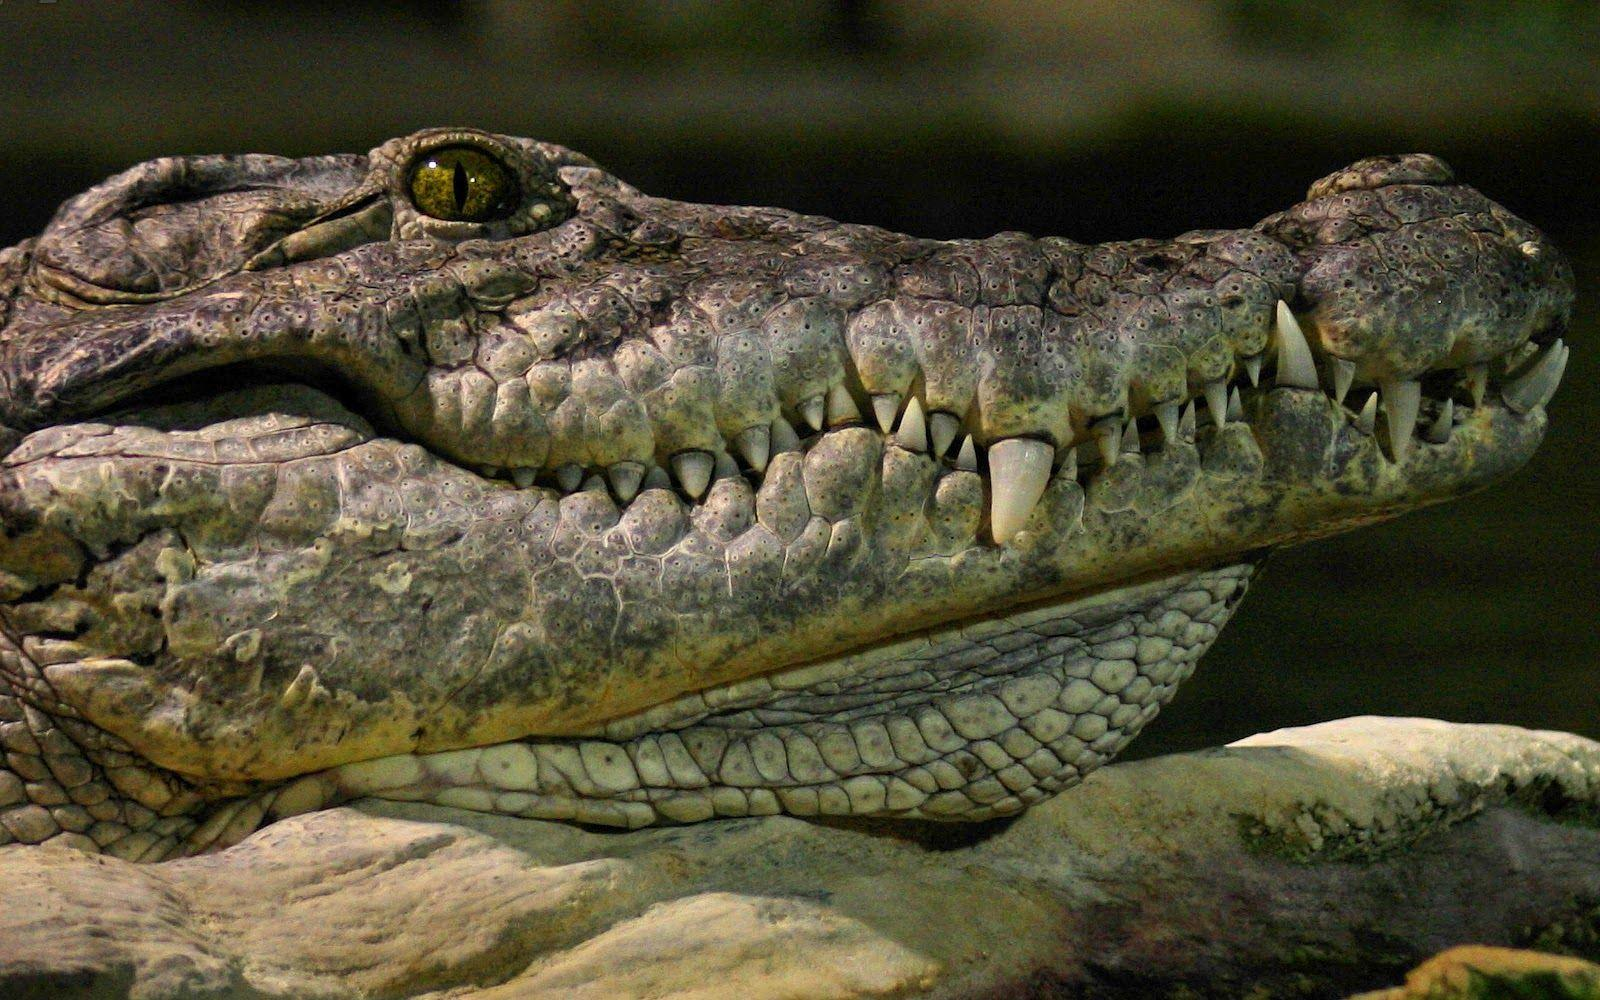 Android Phones Wallpapers: Android Wallpaper Crocodile